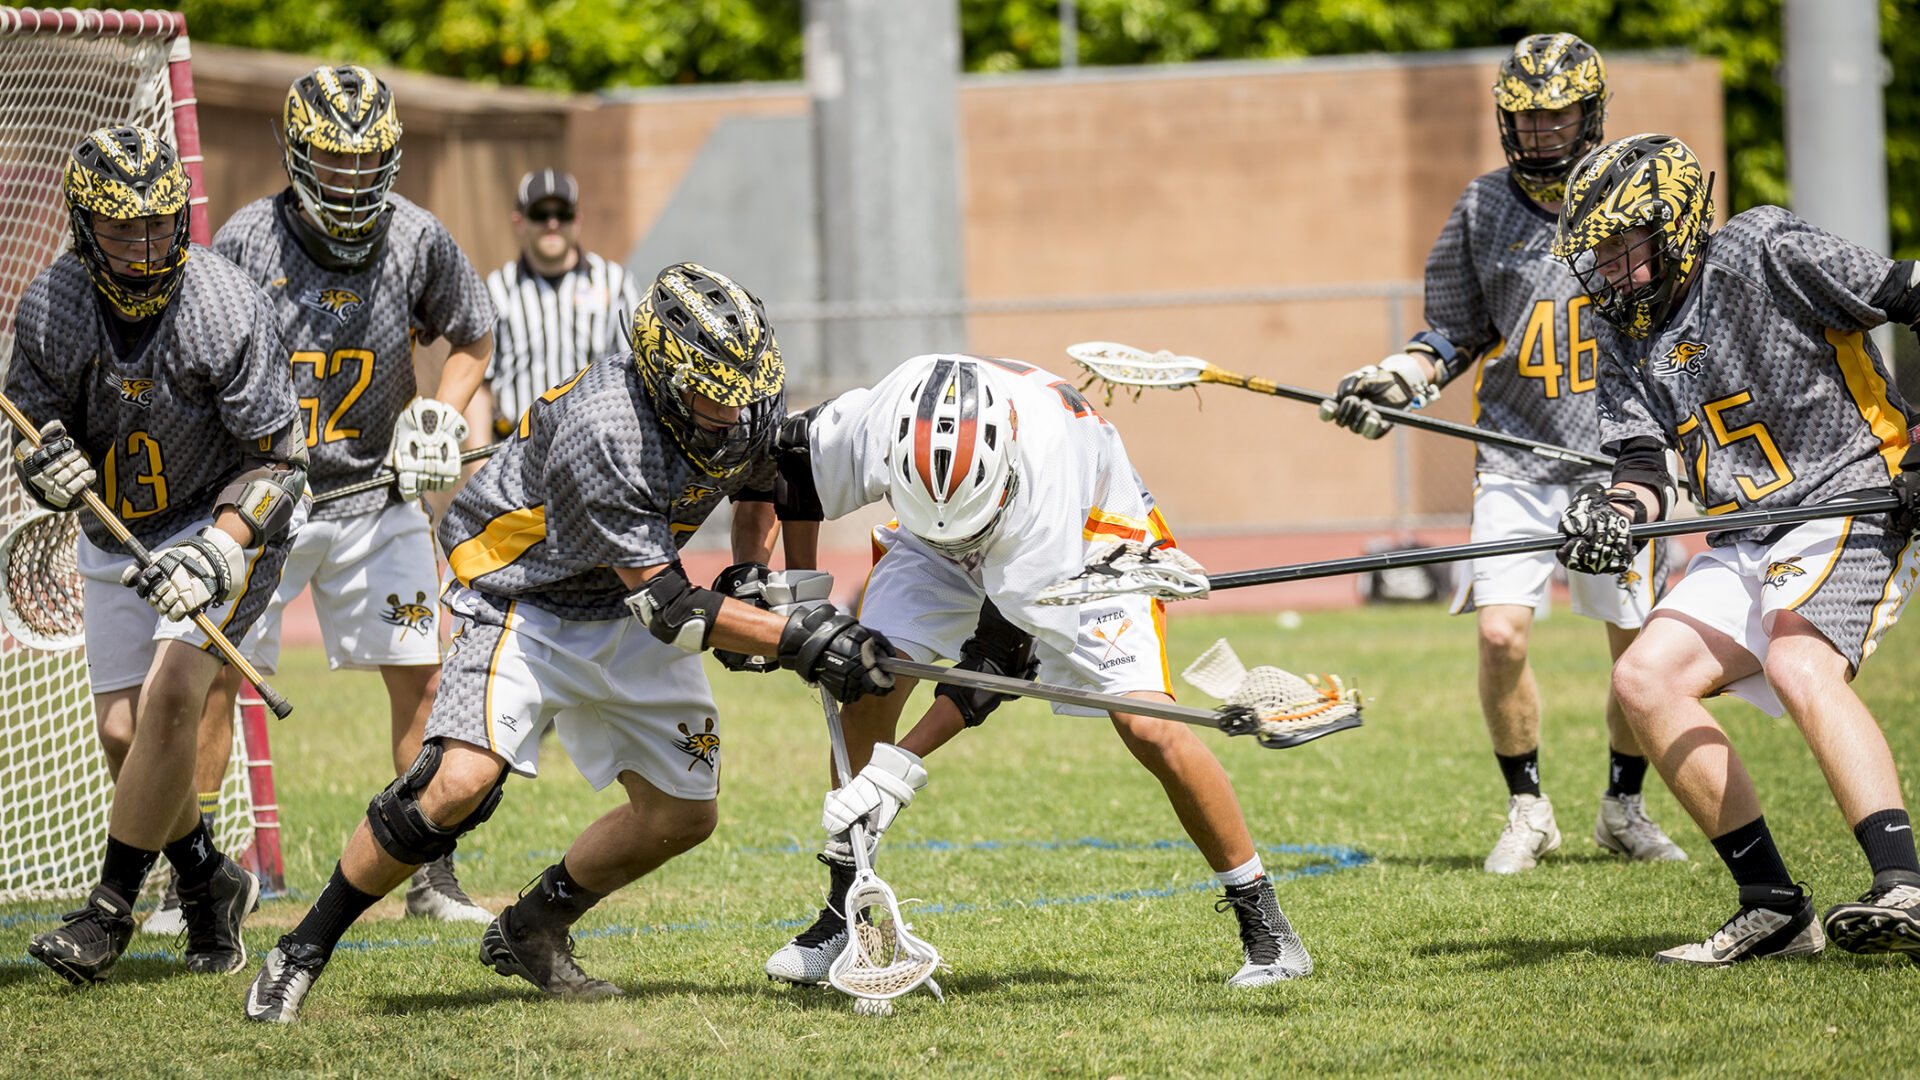 Corona lacrosse competed against Gilbert High in a home contest.